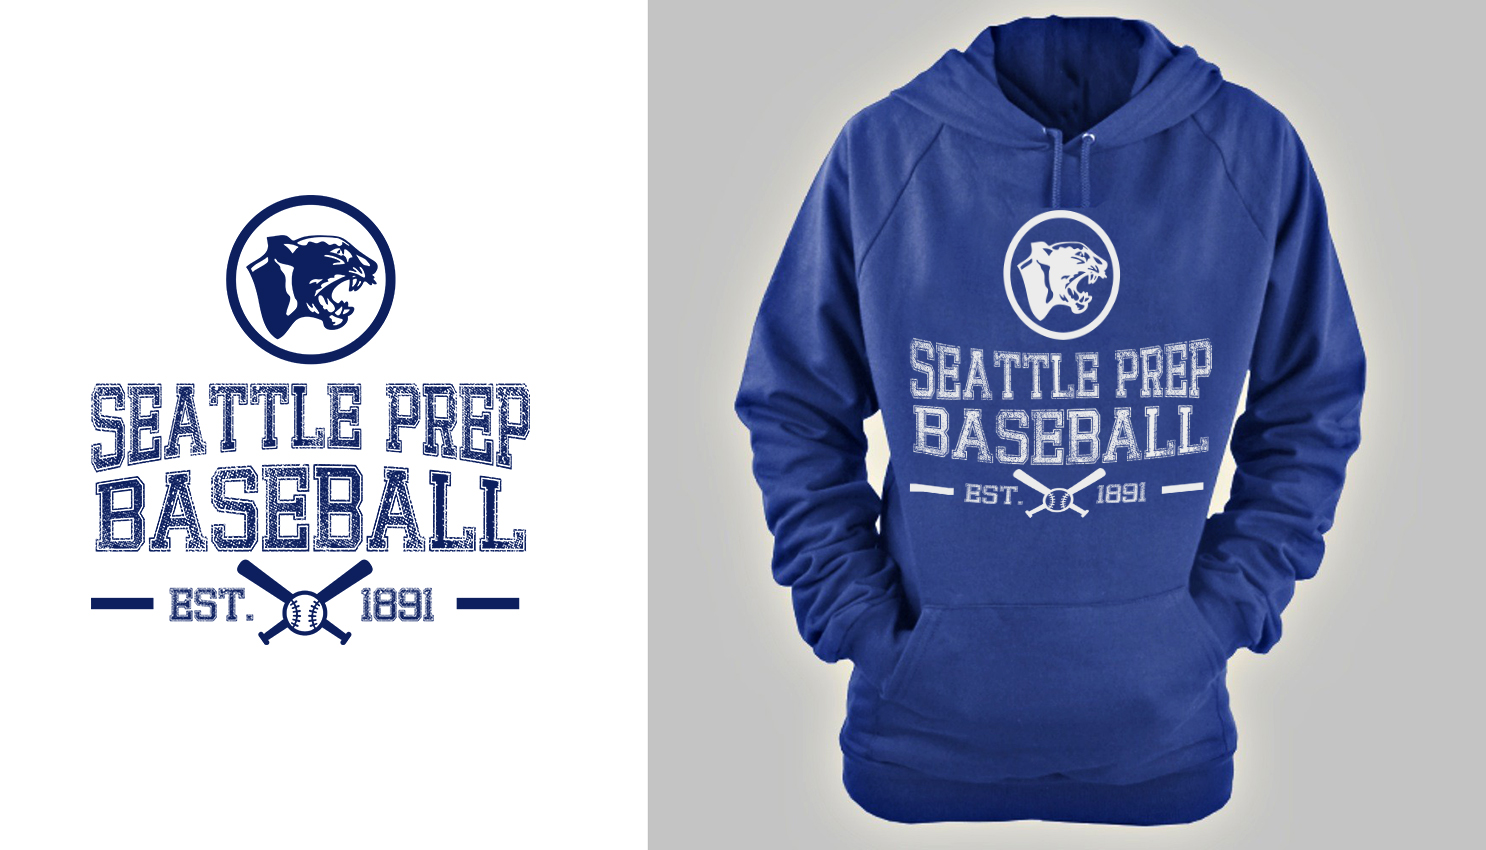 Traditional Masculine High School T Shirt Design For A Company By